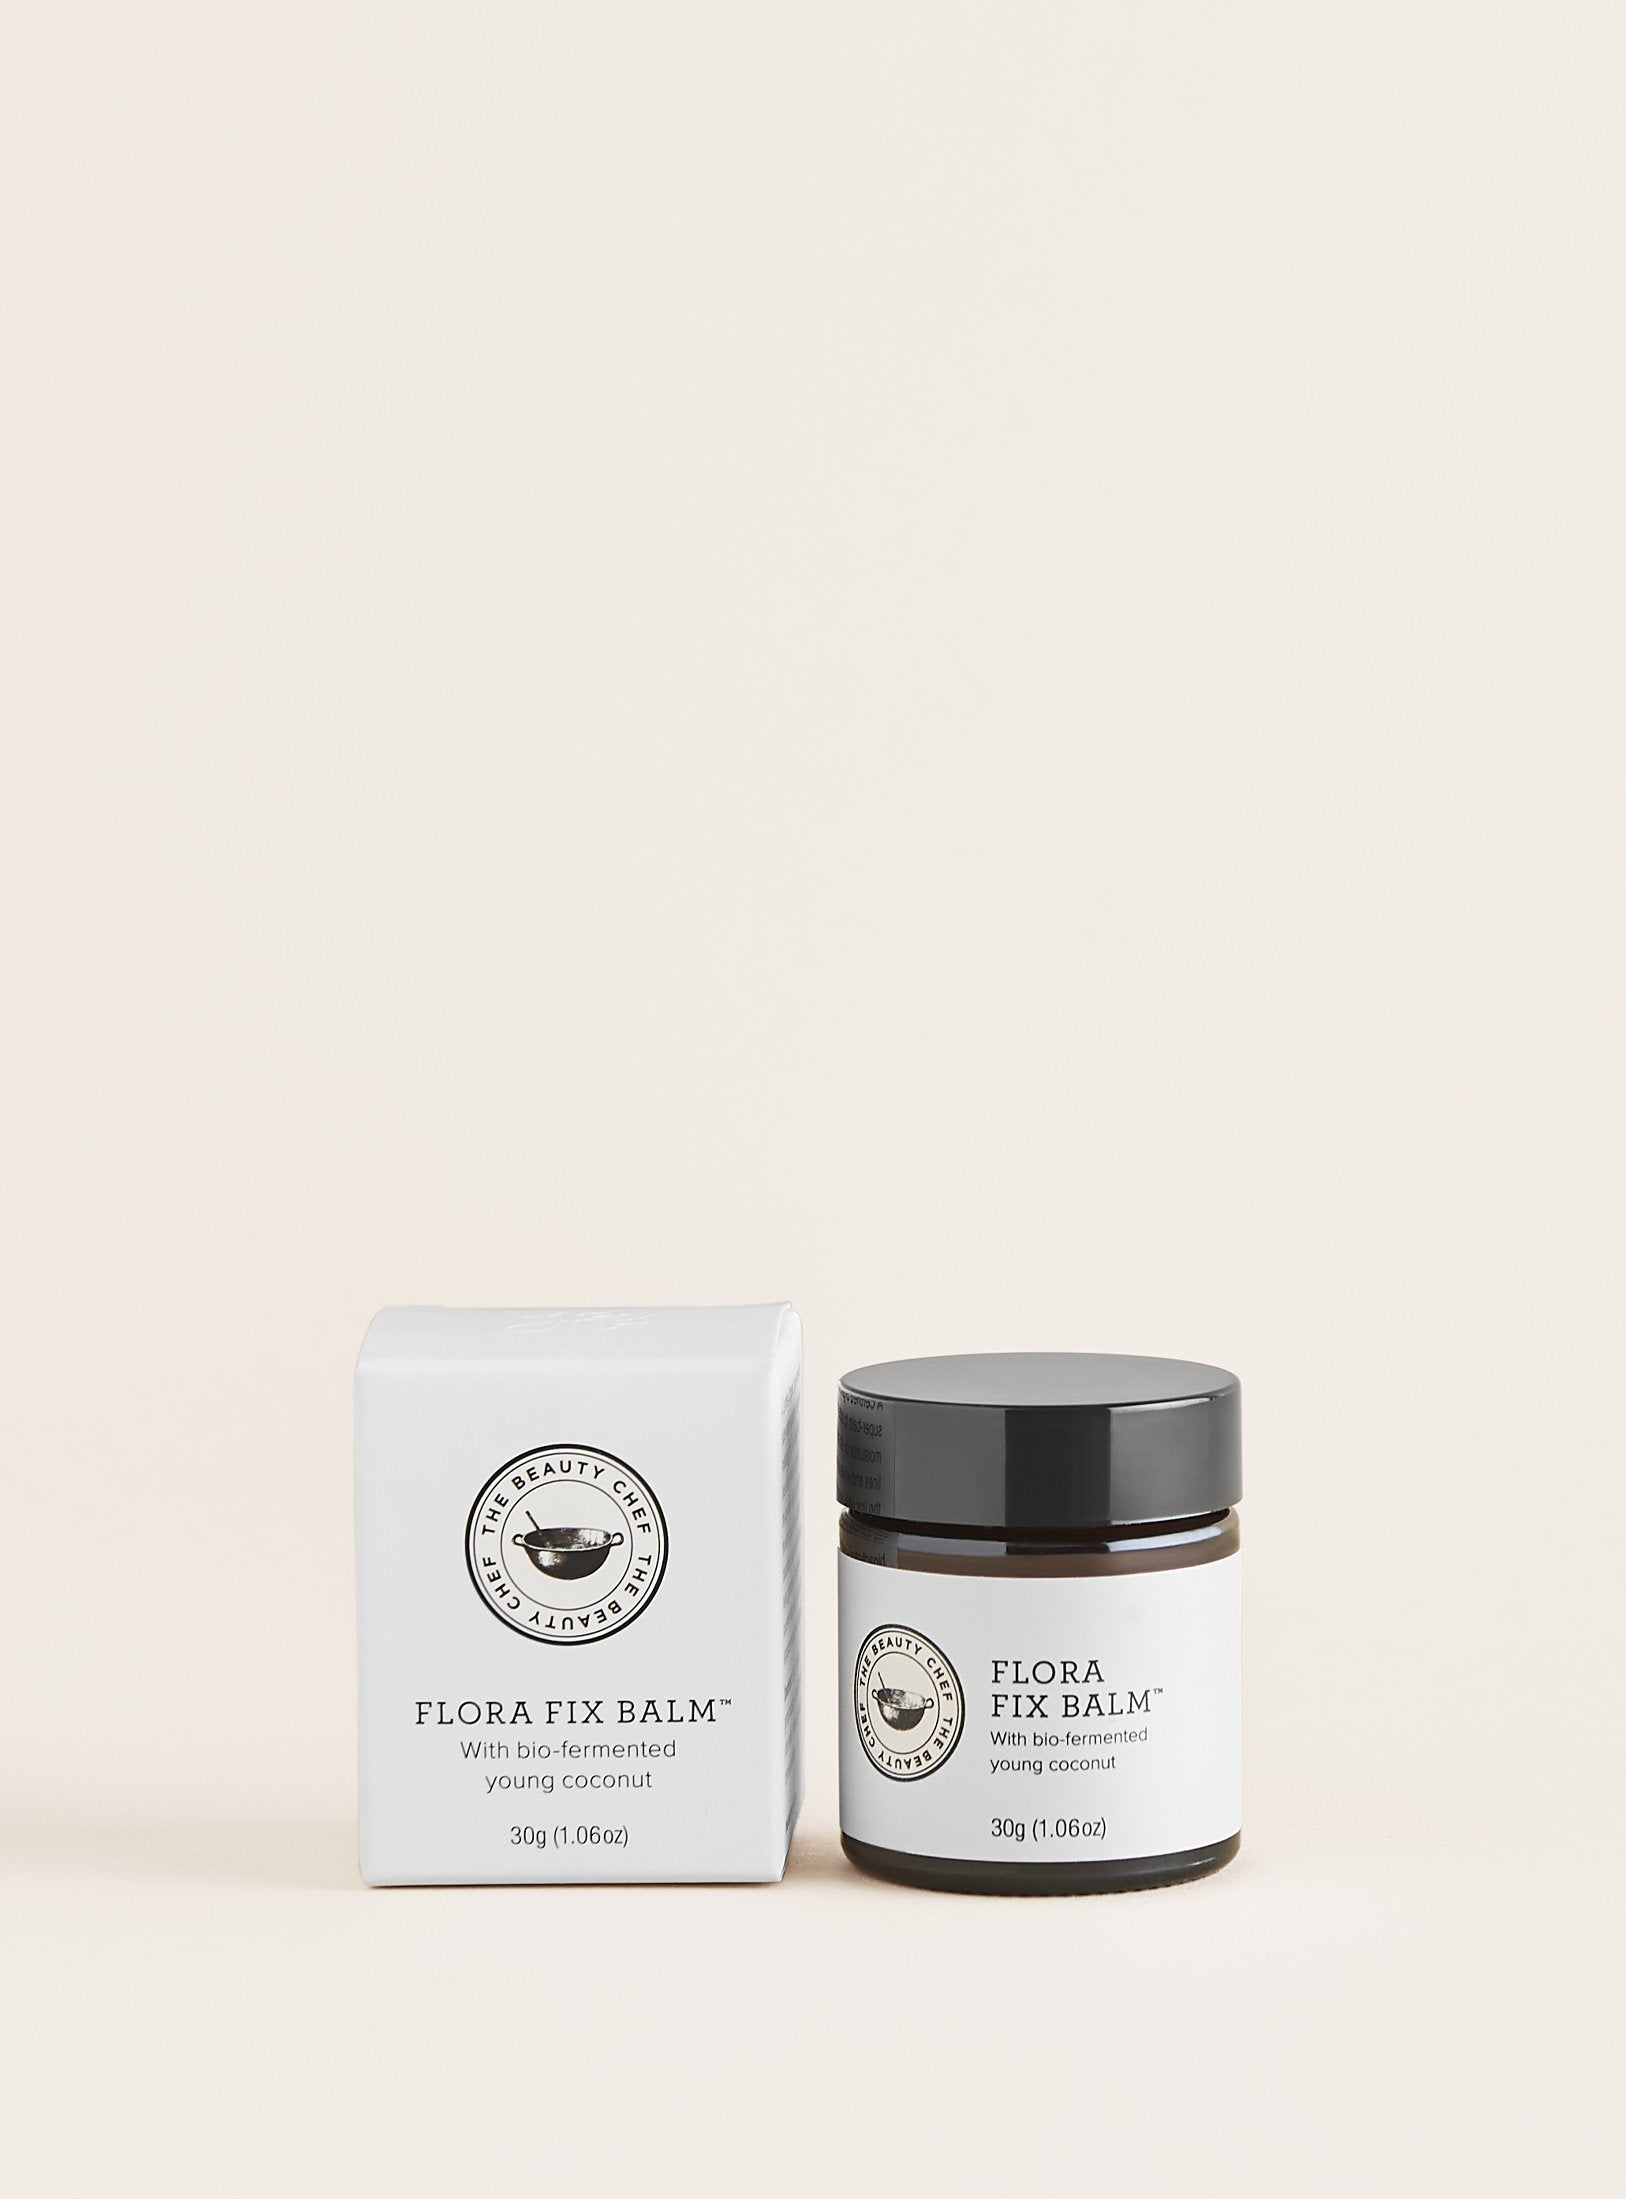 Flora Fix Balm Bundle (12 units) with 1 Tester